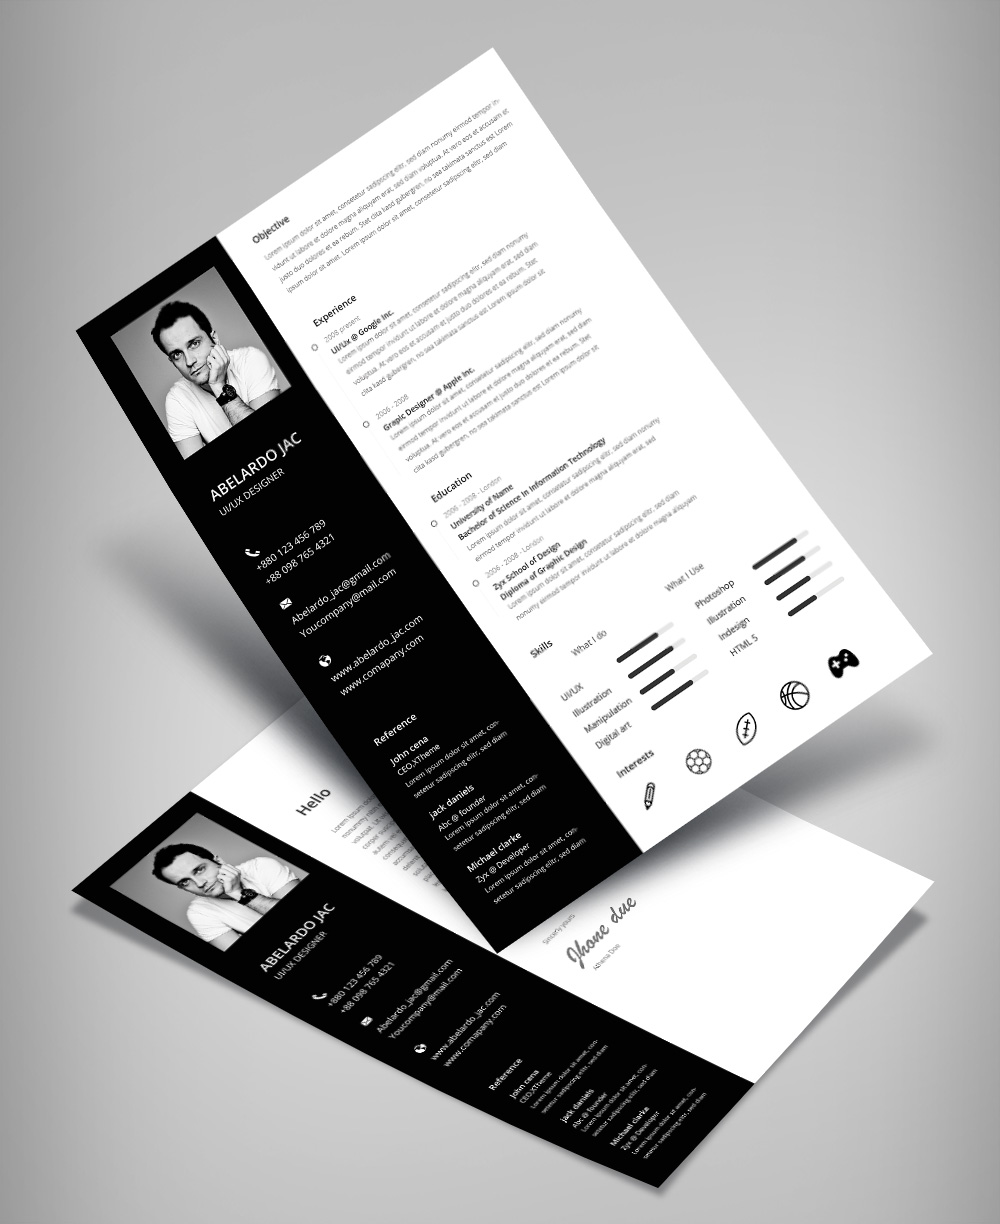 Classy Bkack & White Resume (CV) Template With Cover Letter Free PSD File (4)